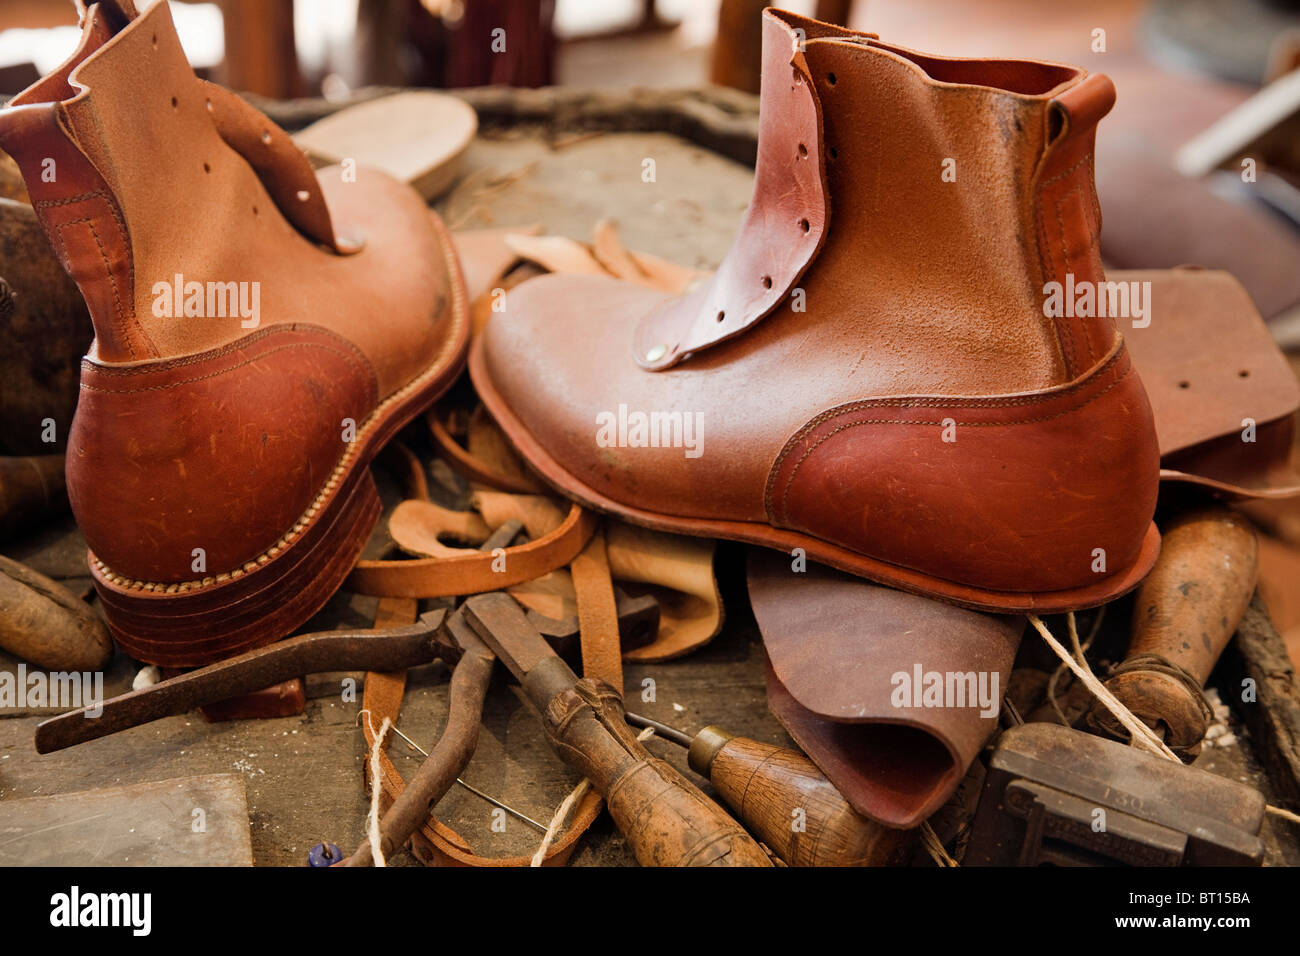 Leather Crafts Home Address Ethnographic Museum Valverde del Camino Huelva Andalusia Spain museo etnografico andalucia - Stock Image